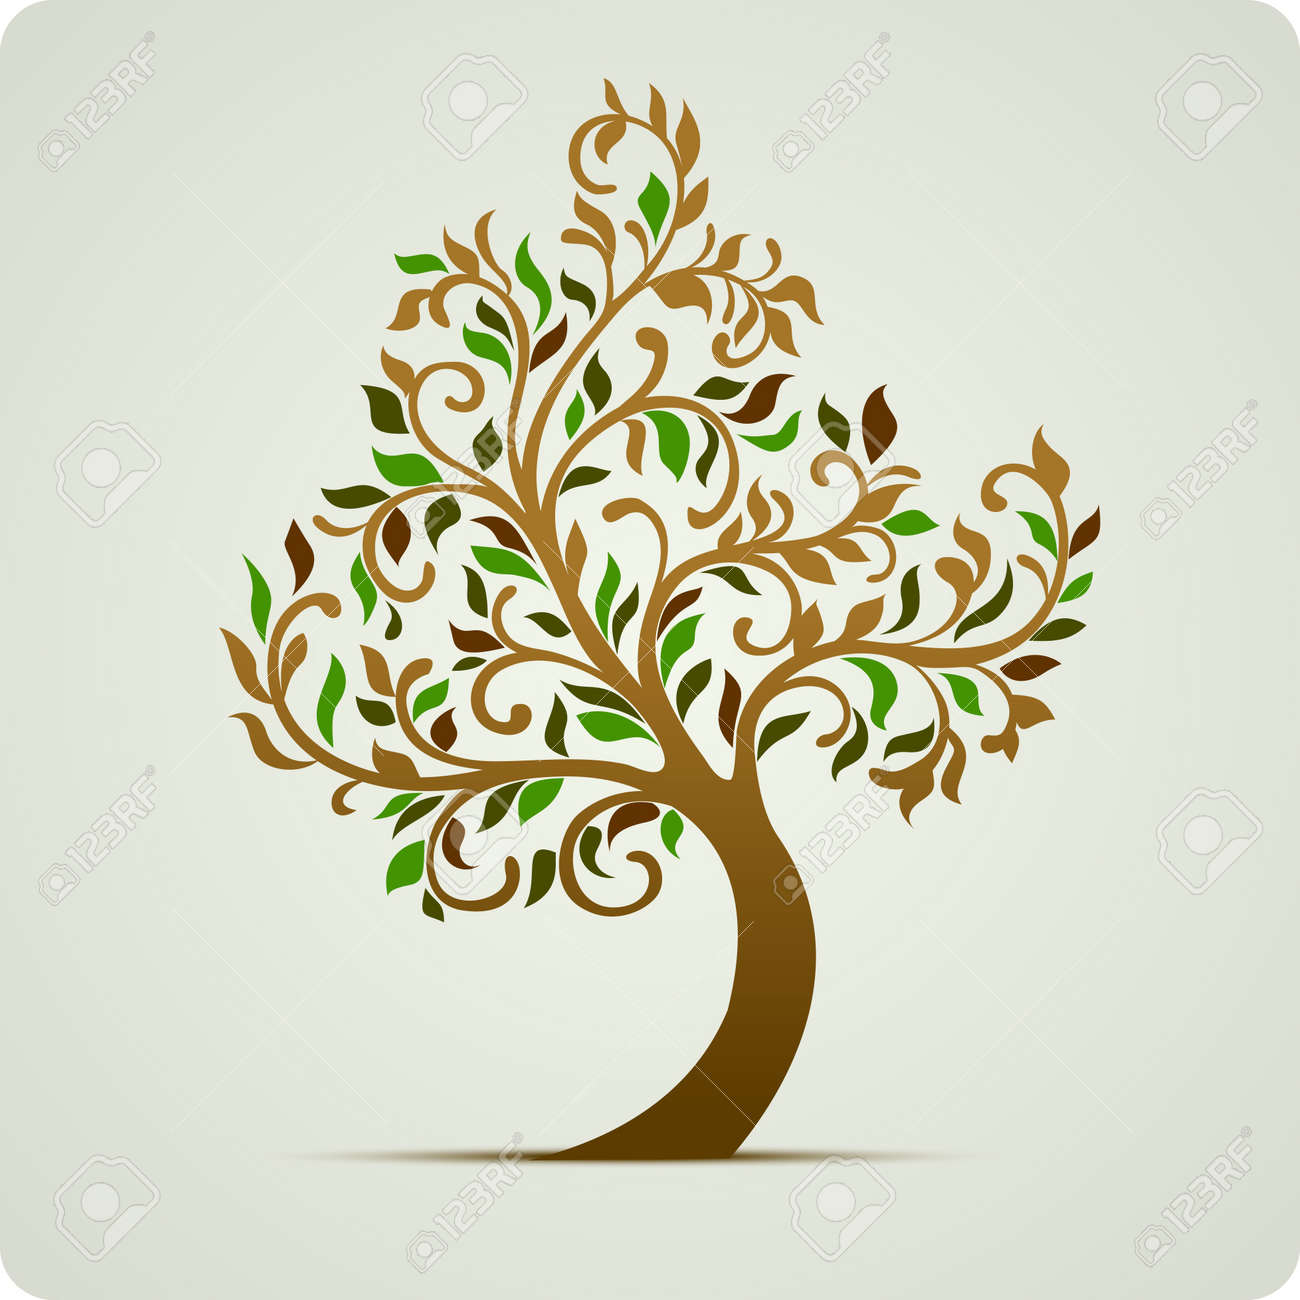 Tree icon abstract illustration Stock Vector - 10502369